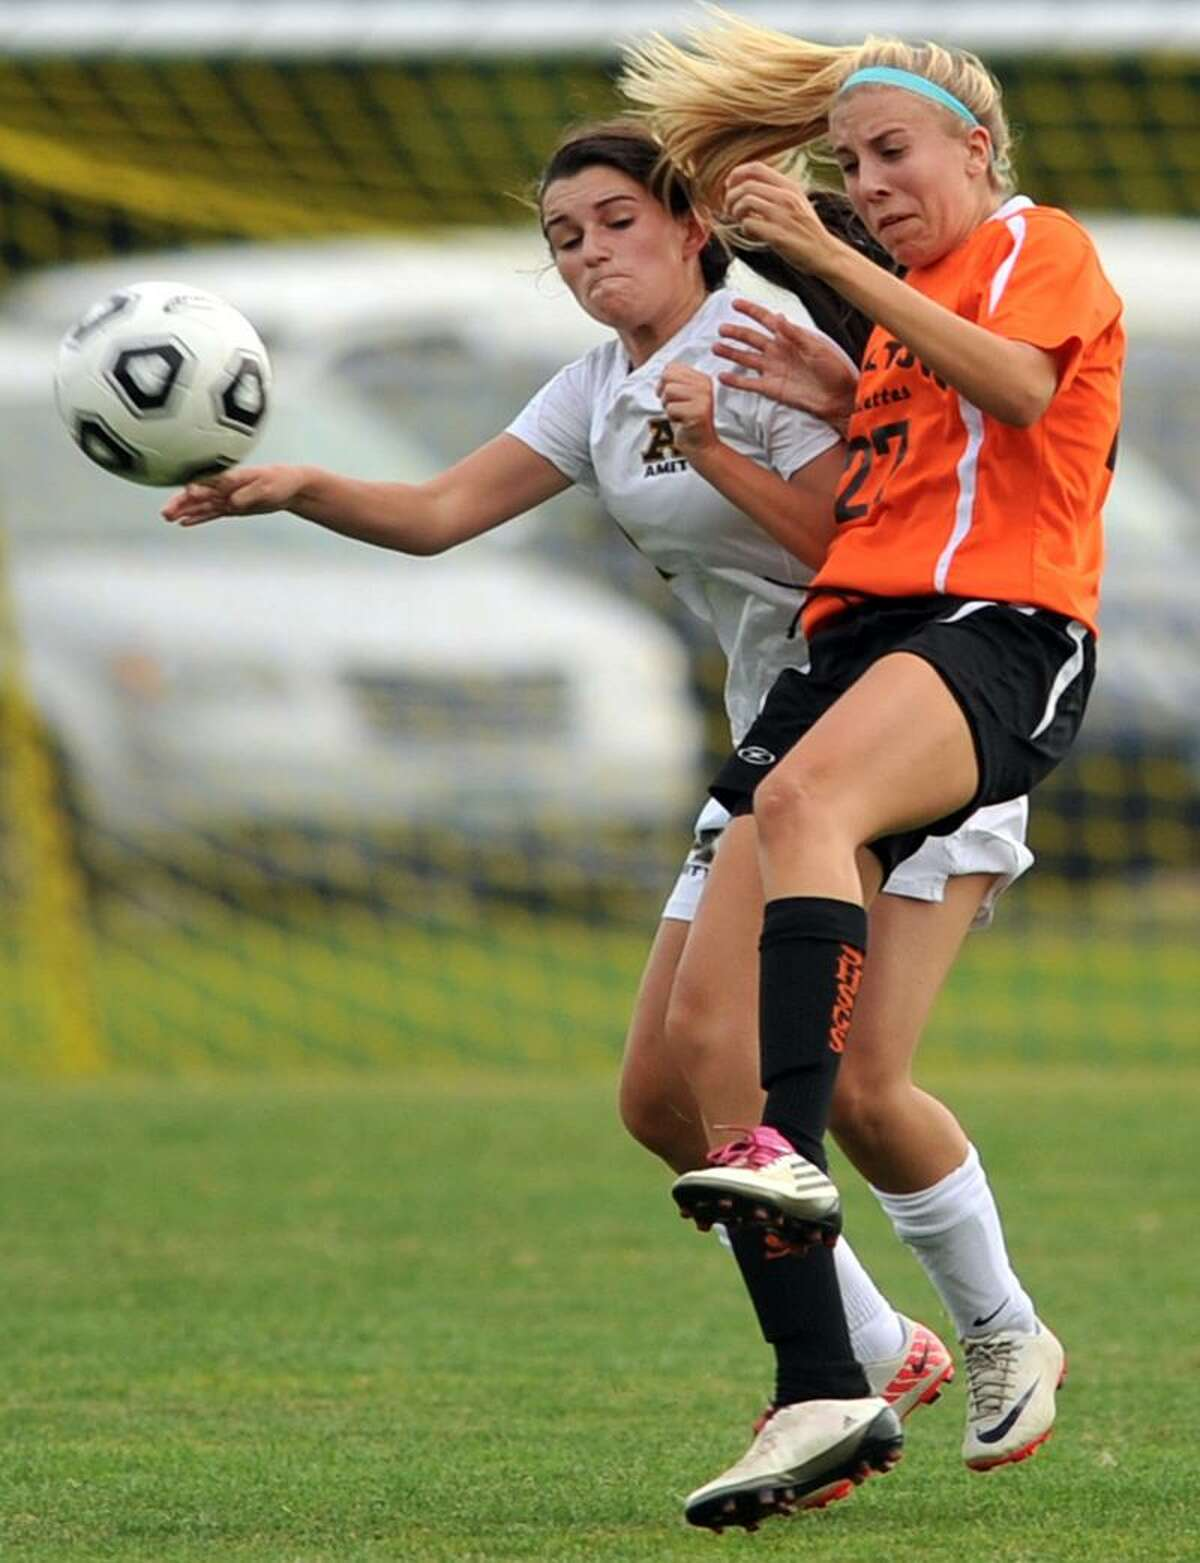 Amity's Samantha Woodwoord, left, and Brittany Innamorato-Brannen of Shelton battle for a header during second-half soccer action of a 1-1 tie. Photo by Peter Hvizdak / Register